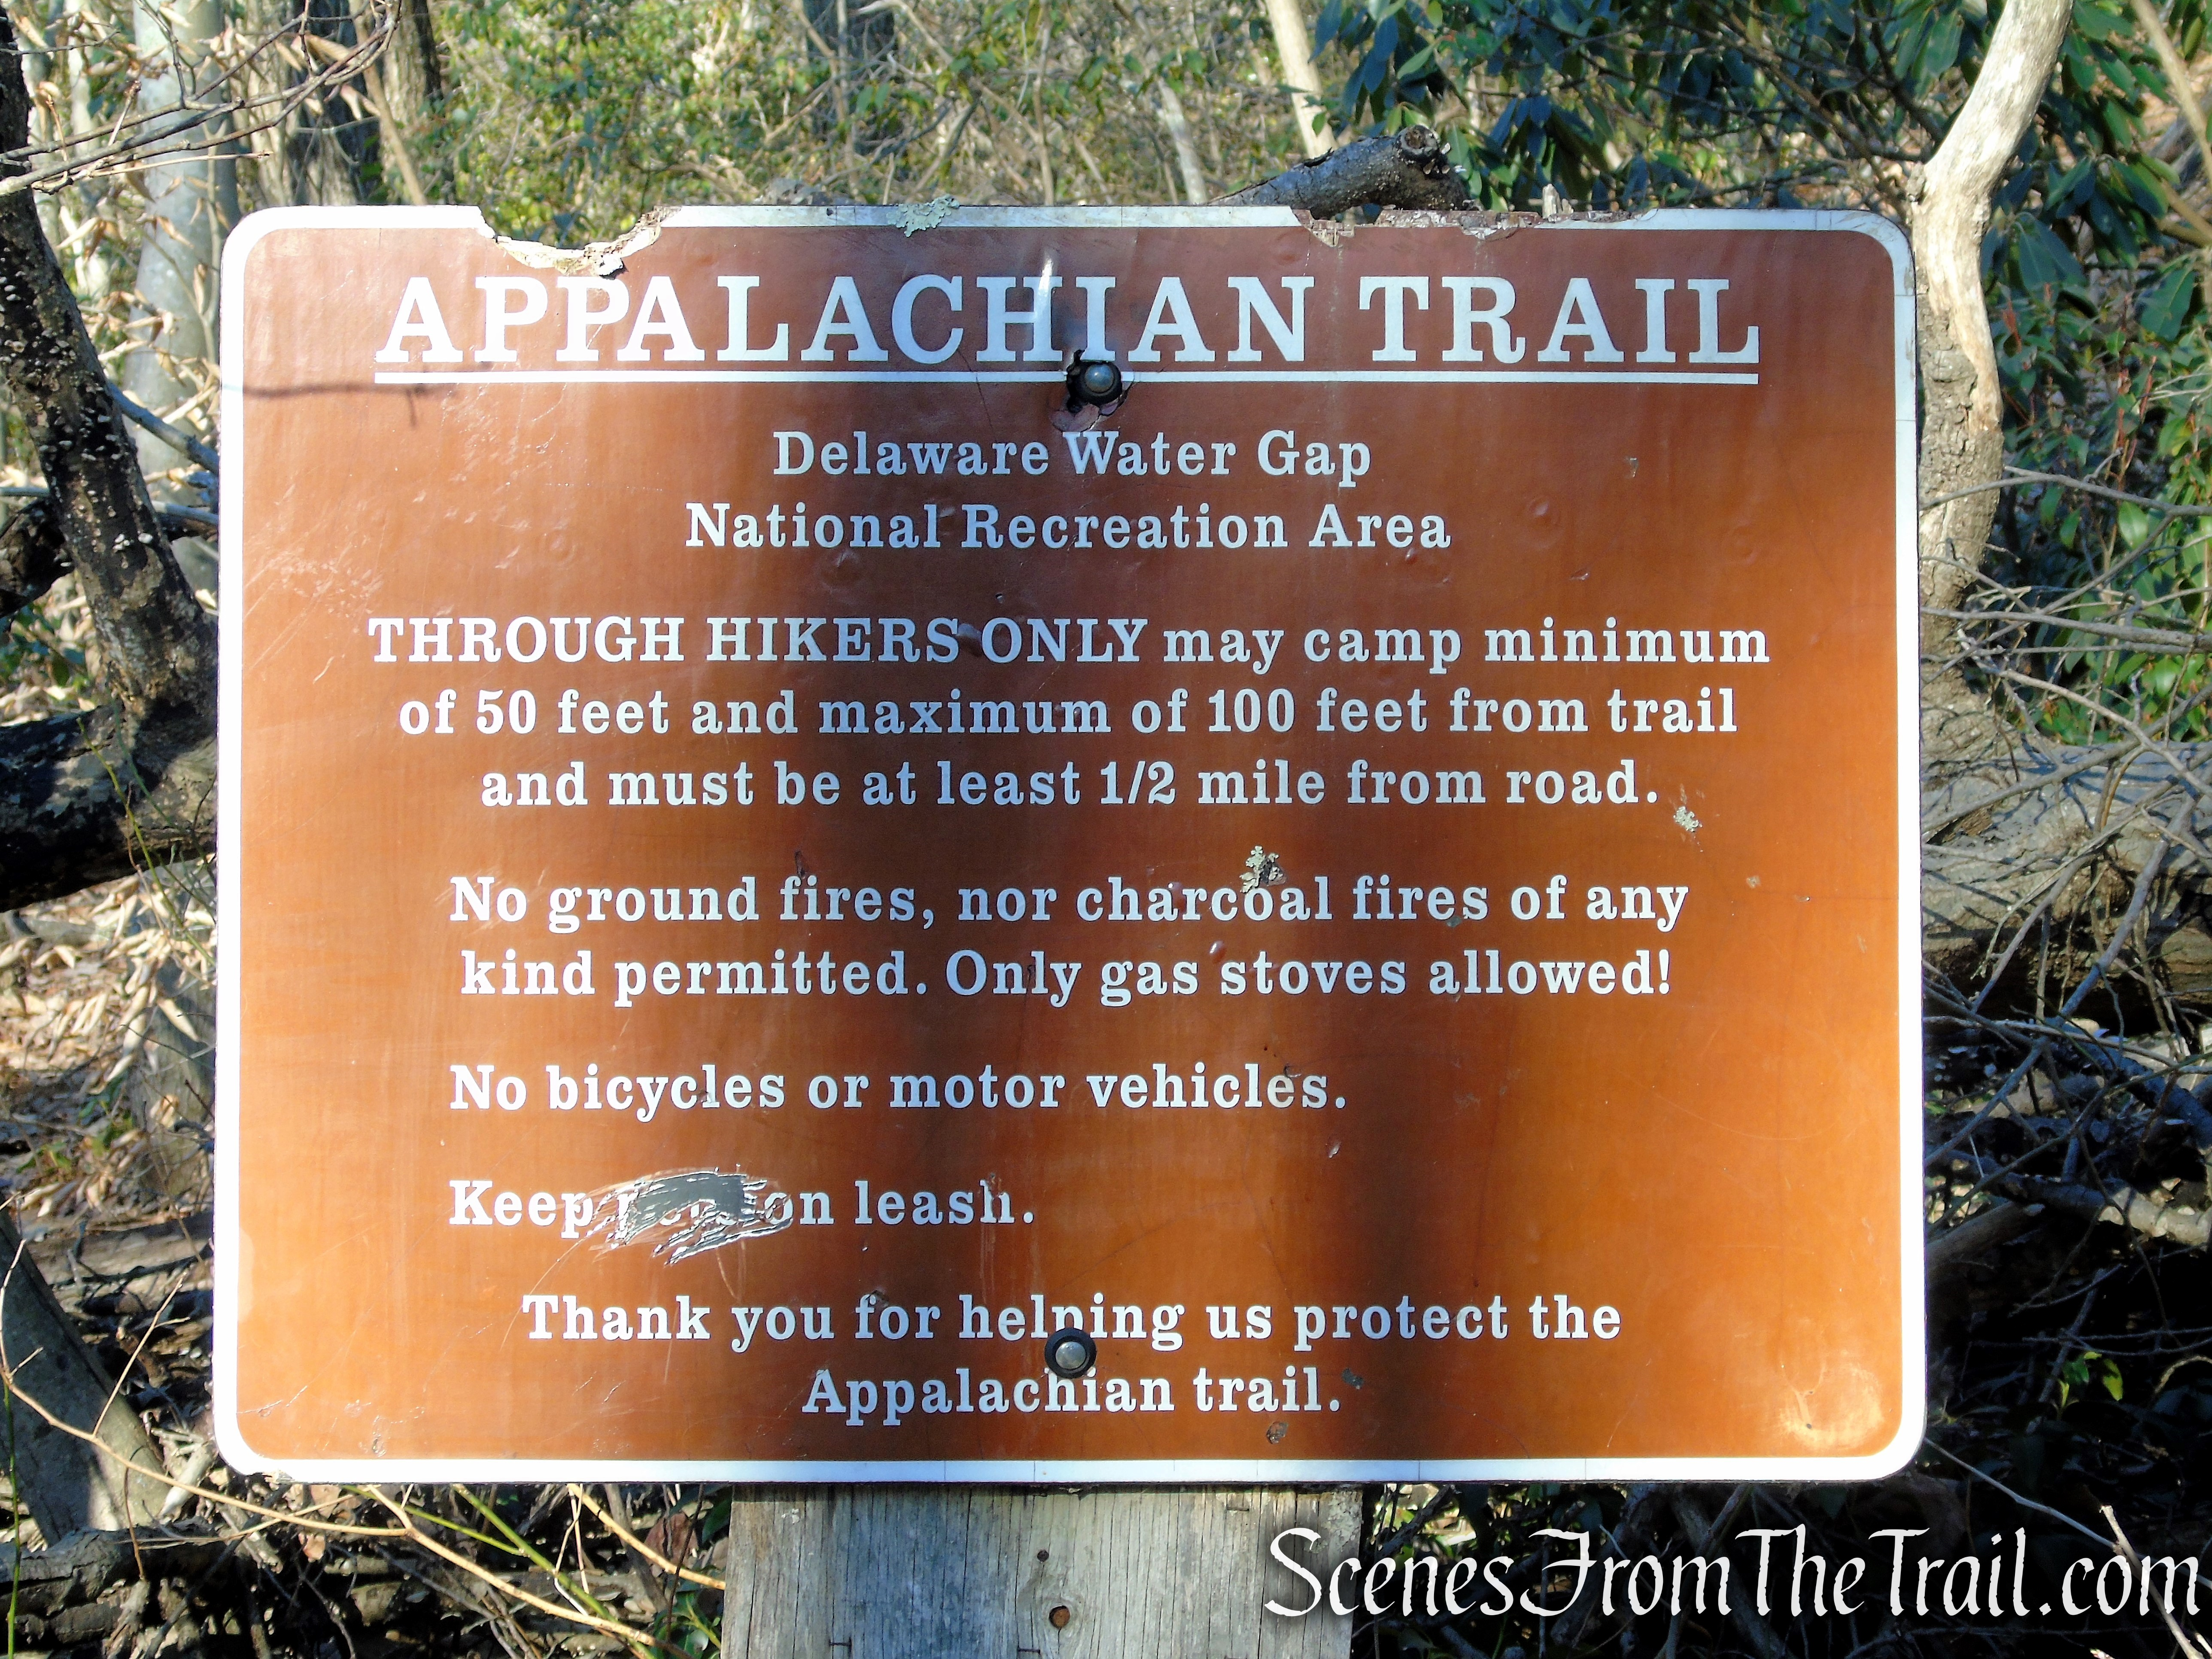 Appalachian Trail - Delaware Water Gap